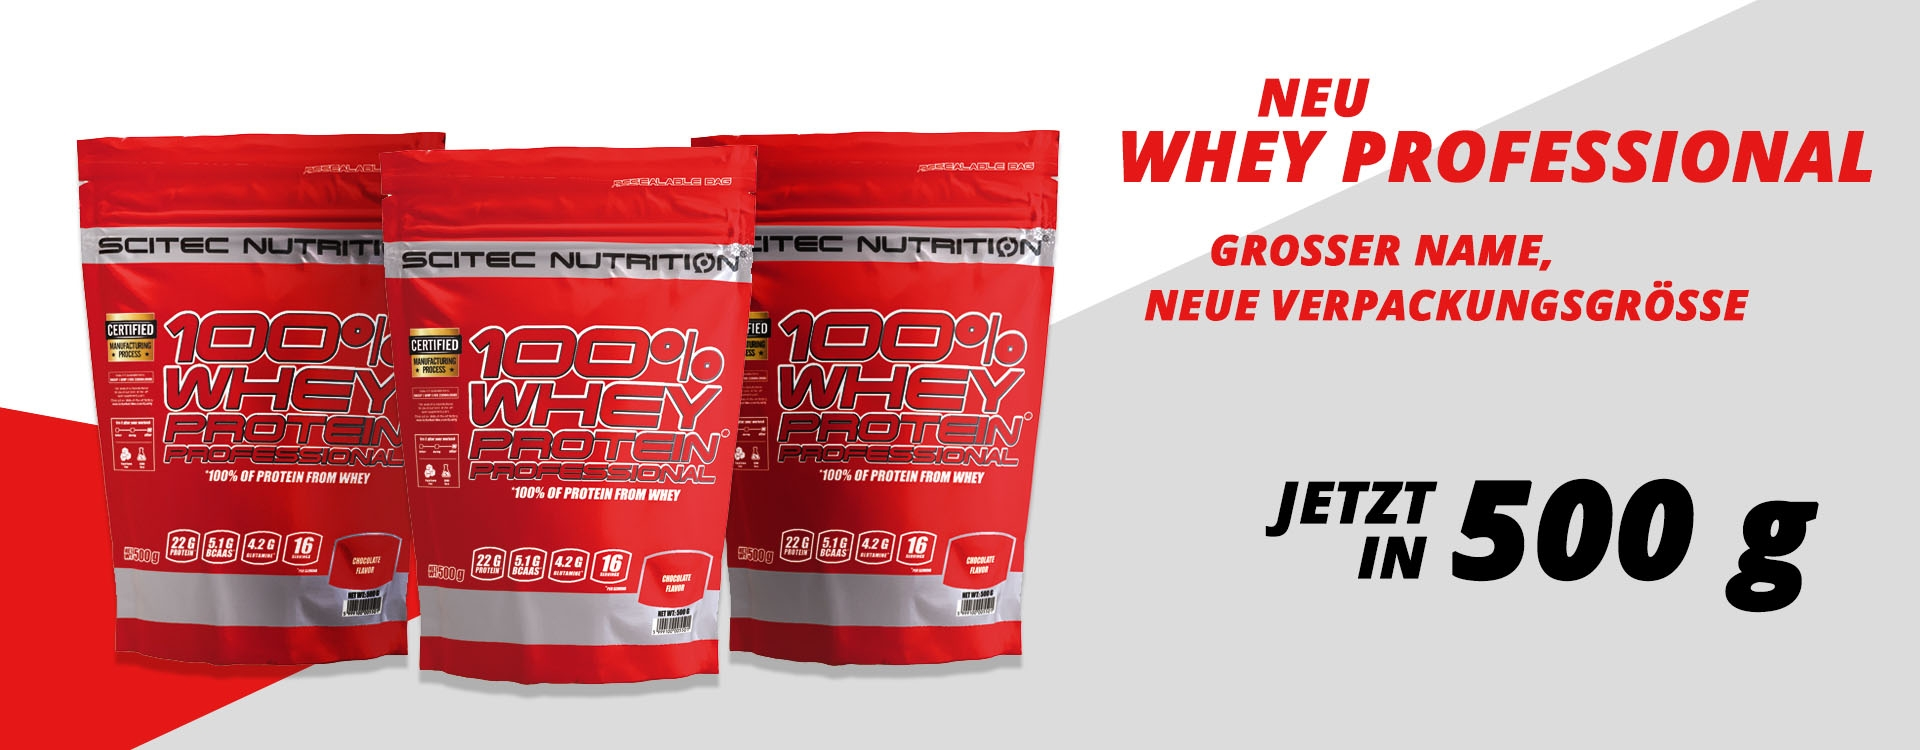 NEU: Scitec Nutrition - 100% Whey Protein Professional, 500g Beutel